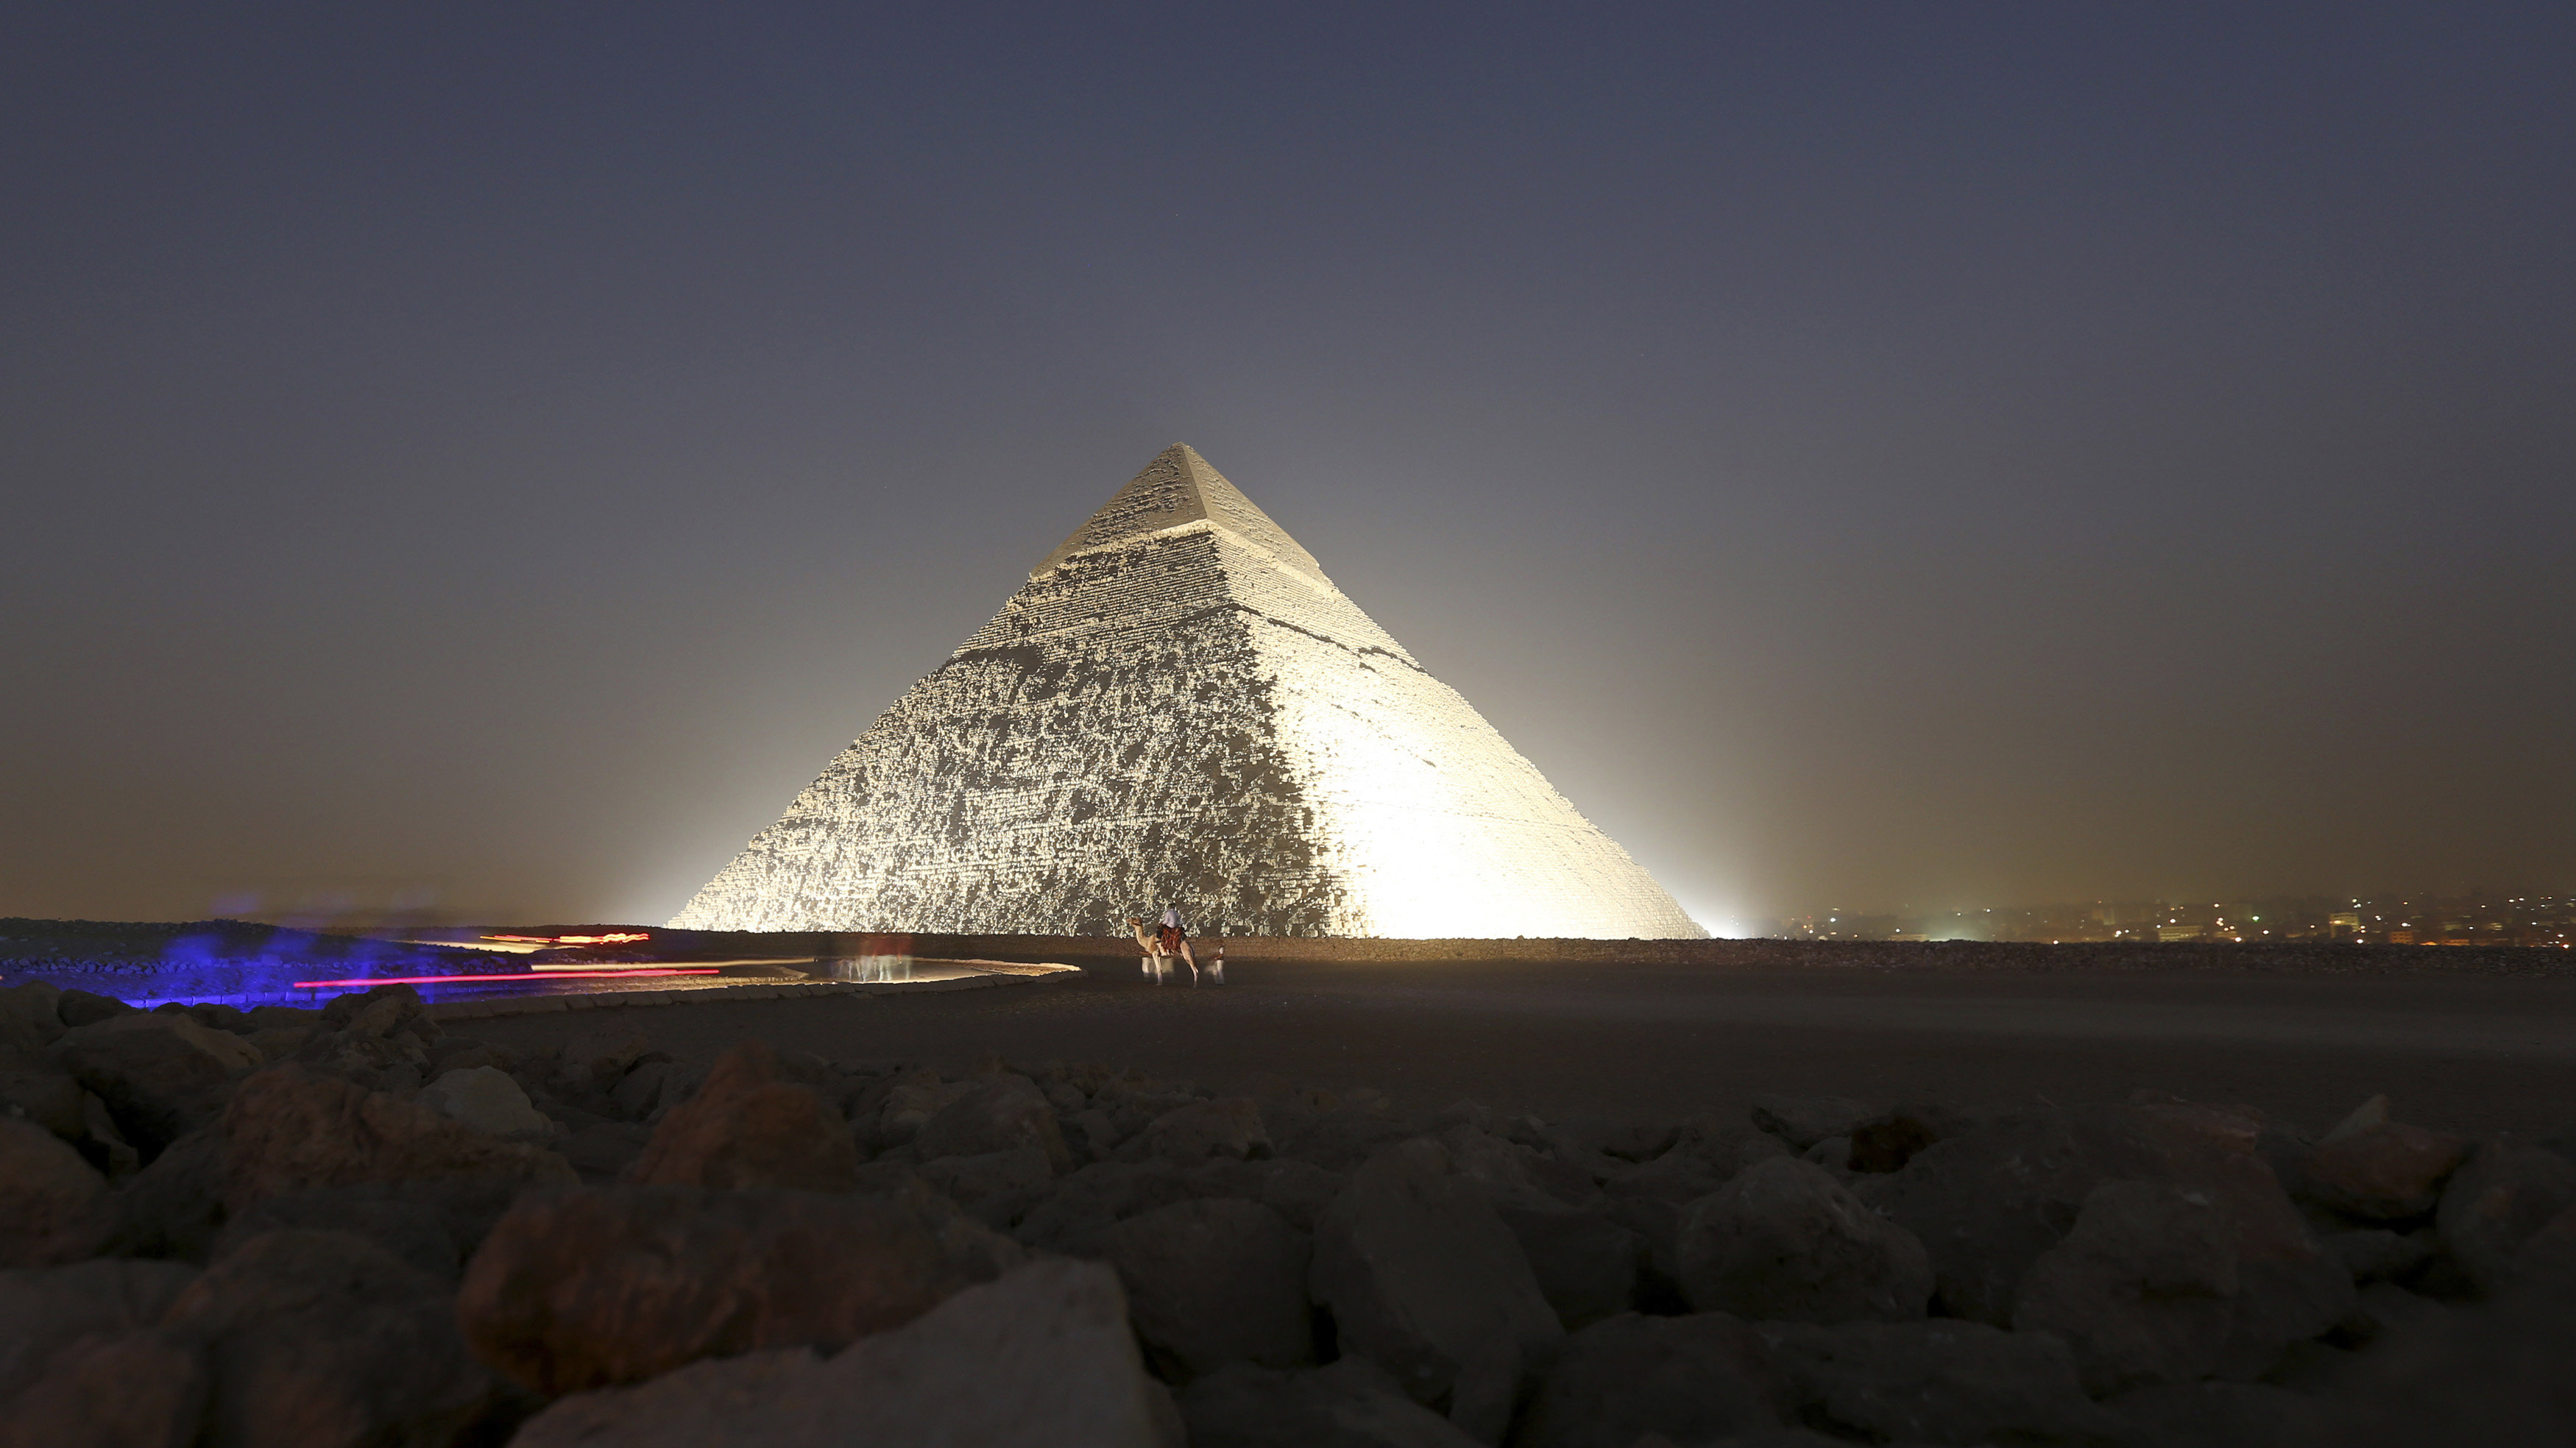 People and a camel stand next to the pyramid of Khufu, during a reopening ceremony of the Sphinx, in Giza, November 9, 2014. The Great Sphinx of Giza, which sits next to the ancient Pyramids, reopens after undergoing major restoration work, including repairs to its worn out base, in a ceremony attended by the country's top officials, including Prime Minister Ibrahim Mahlab.